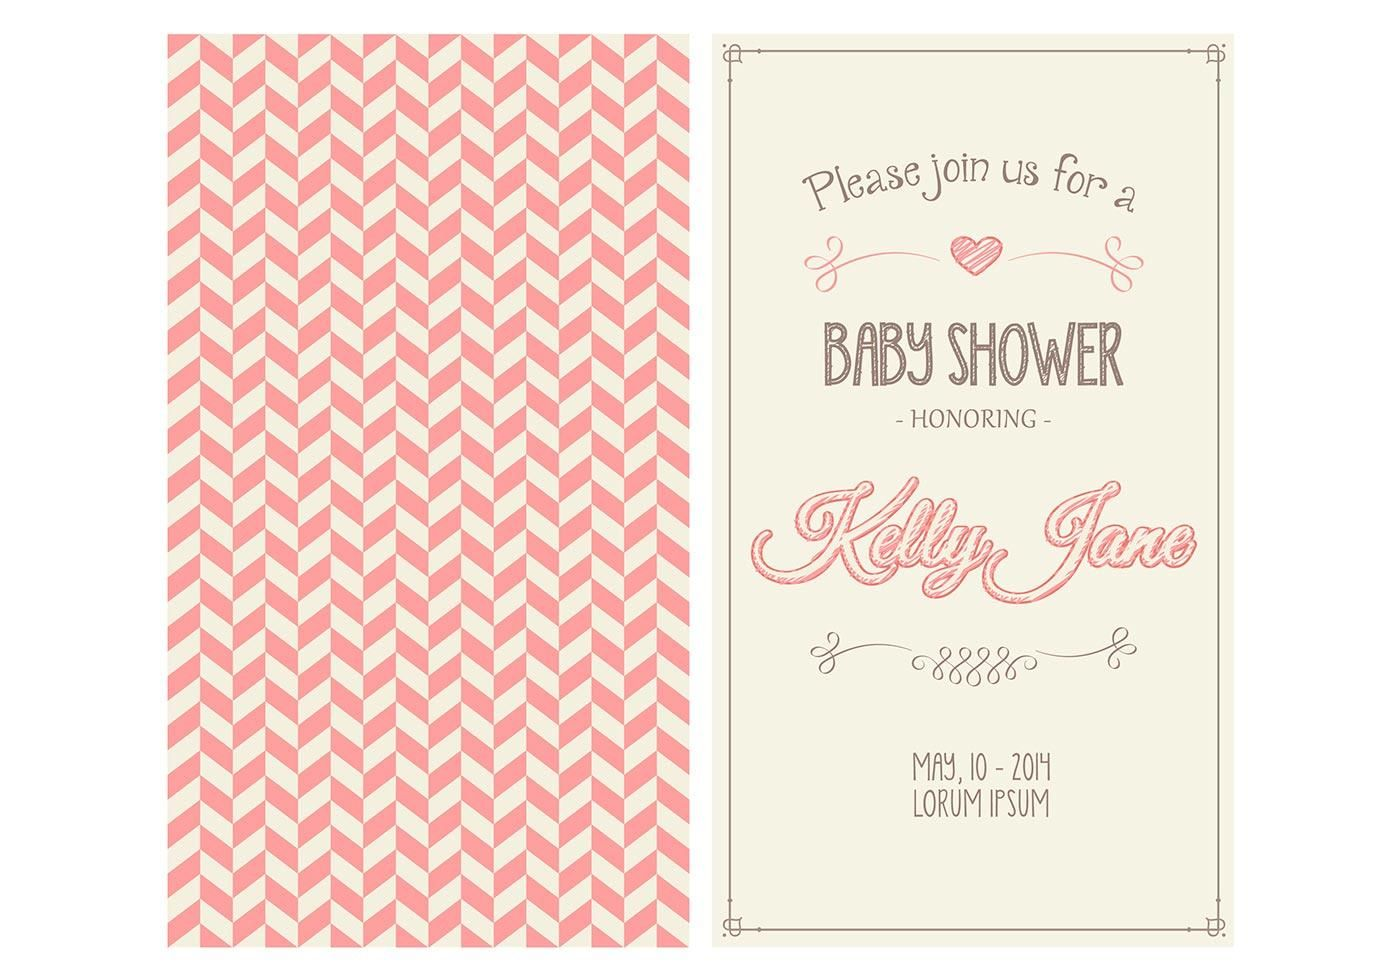 Baby girl shower invitation vector diy printables pinterest baby girl shower invitation vector stopboris Choice Image